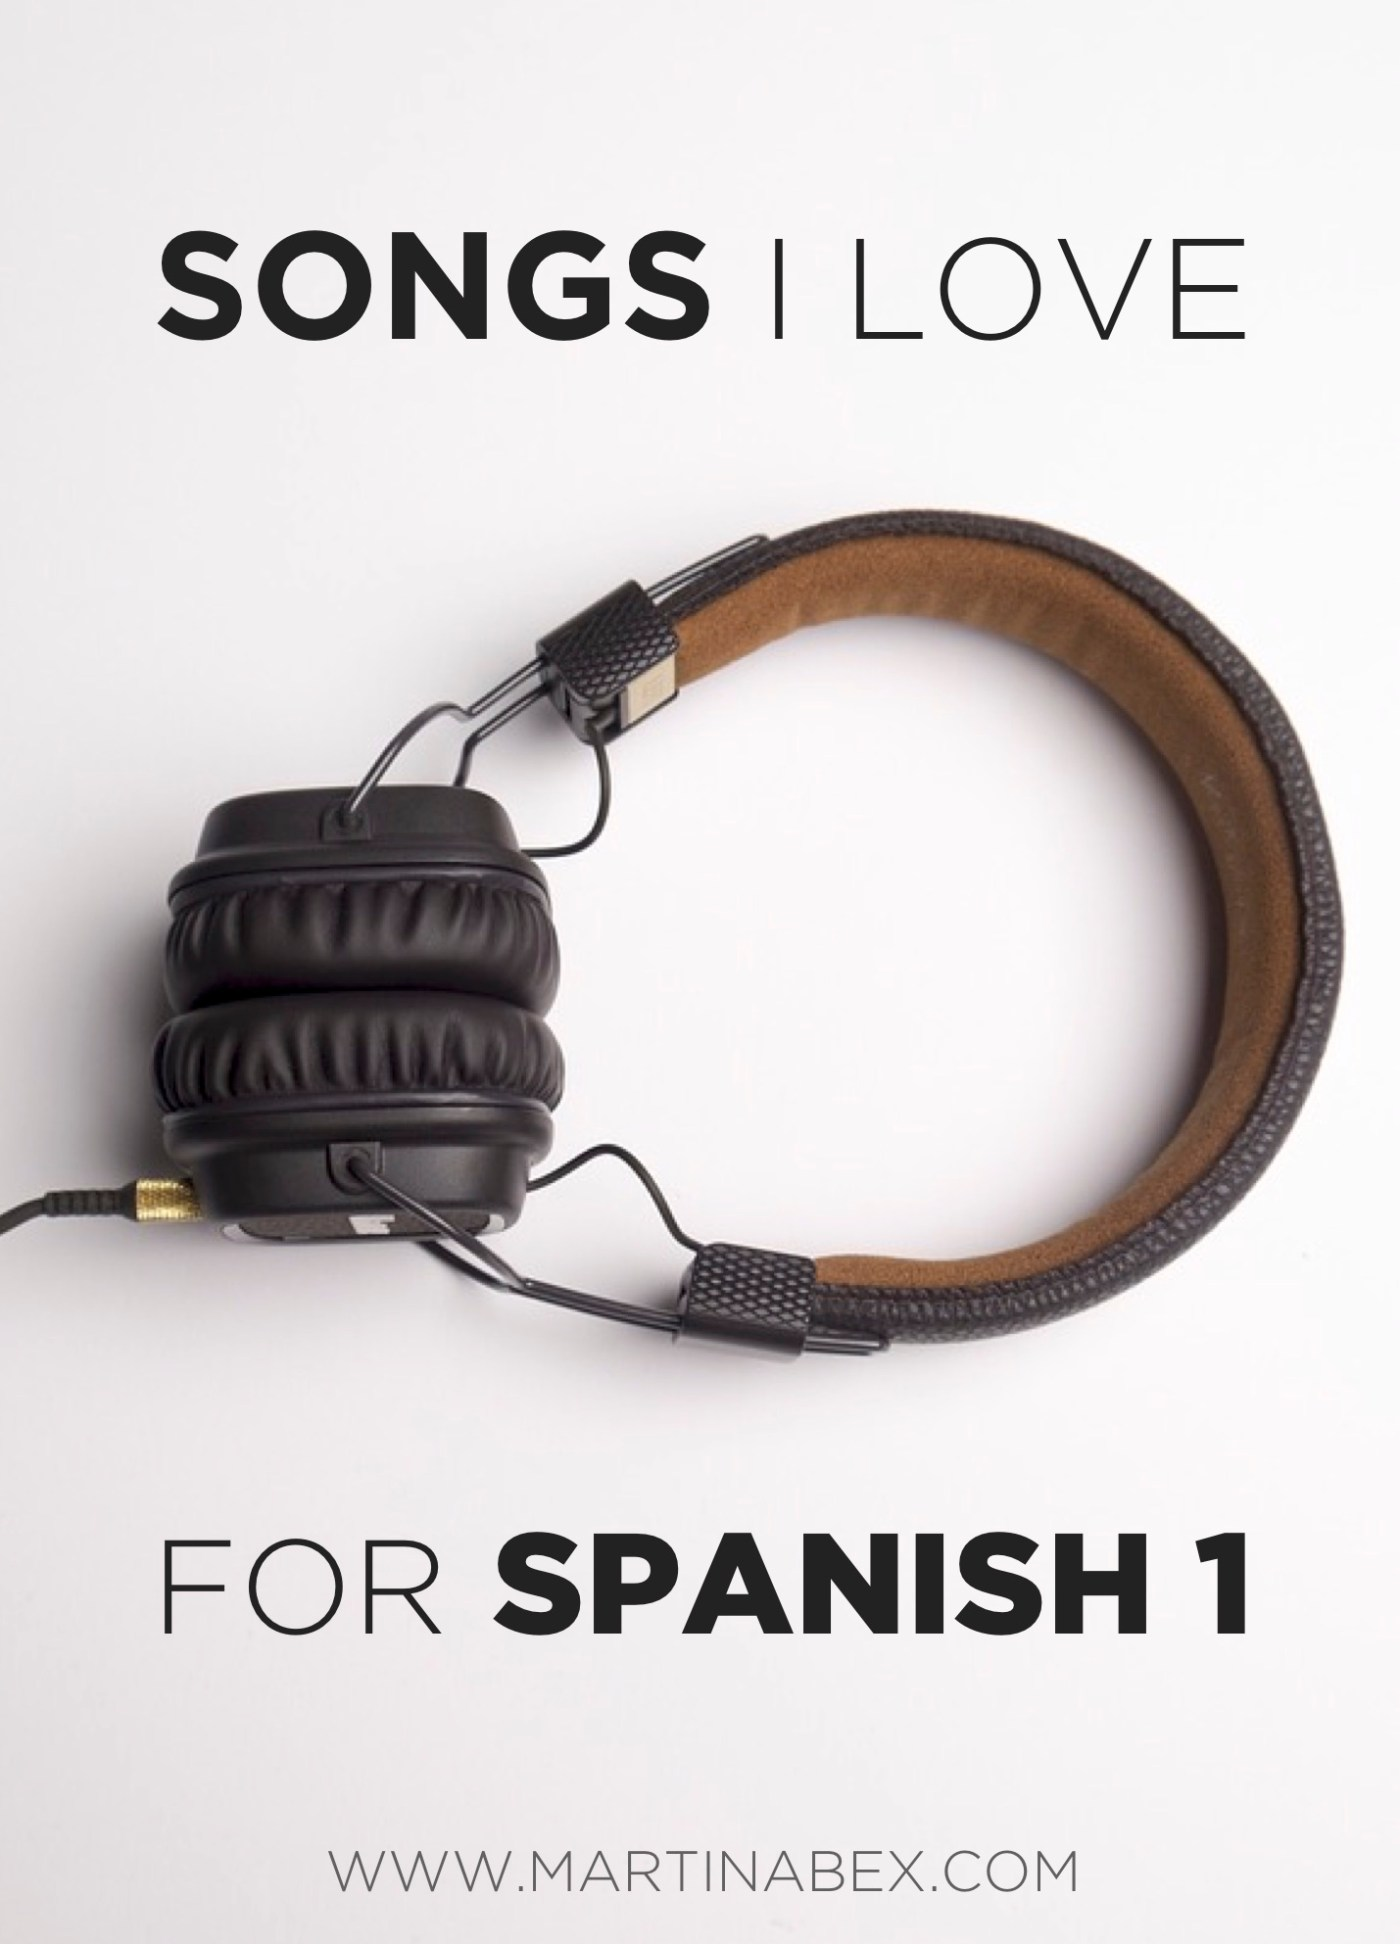 10 songs that are perfect for Spanish 1 + suggestions for how to use them effectively!